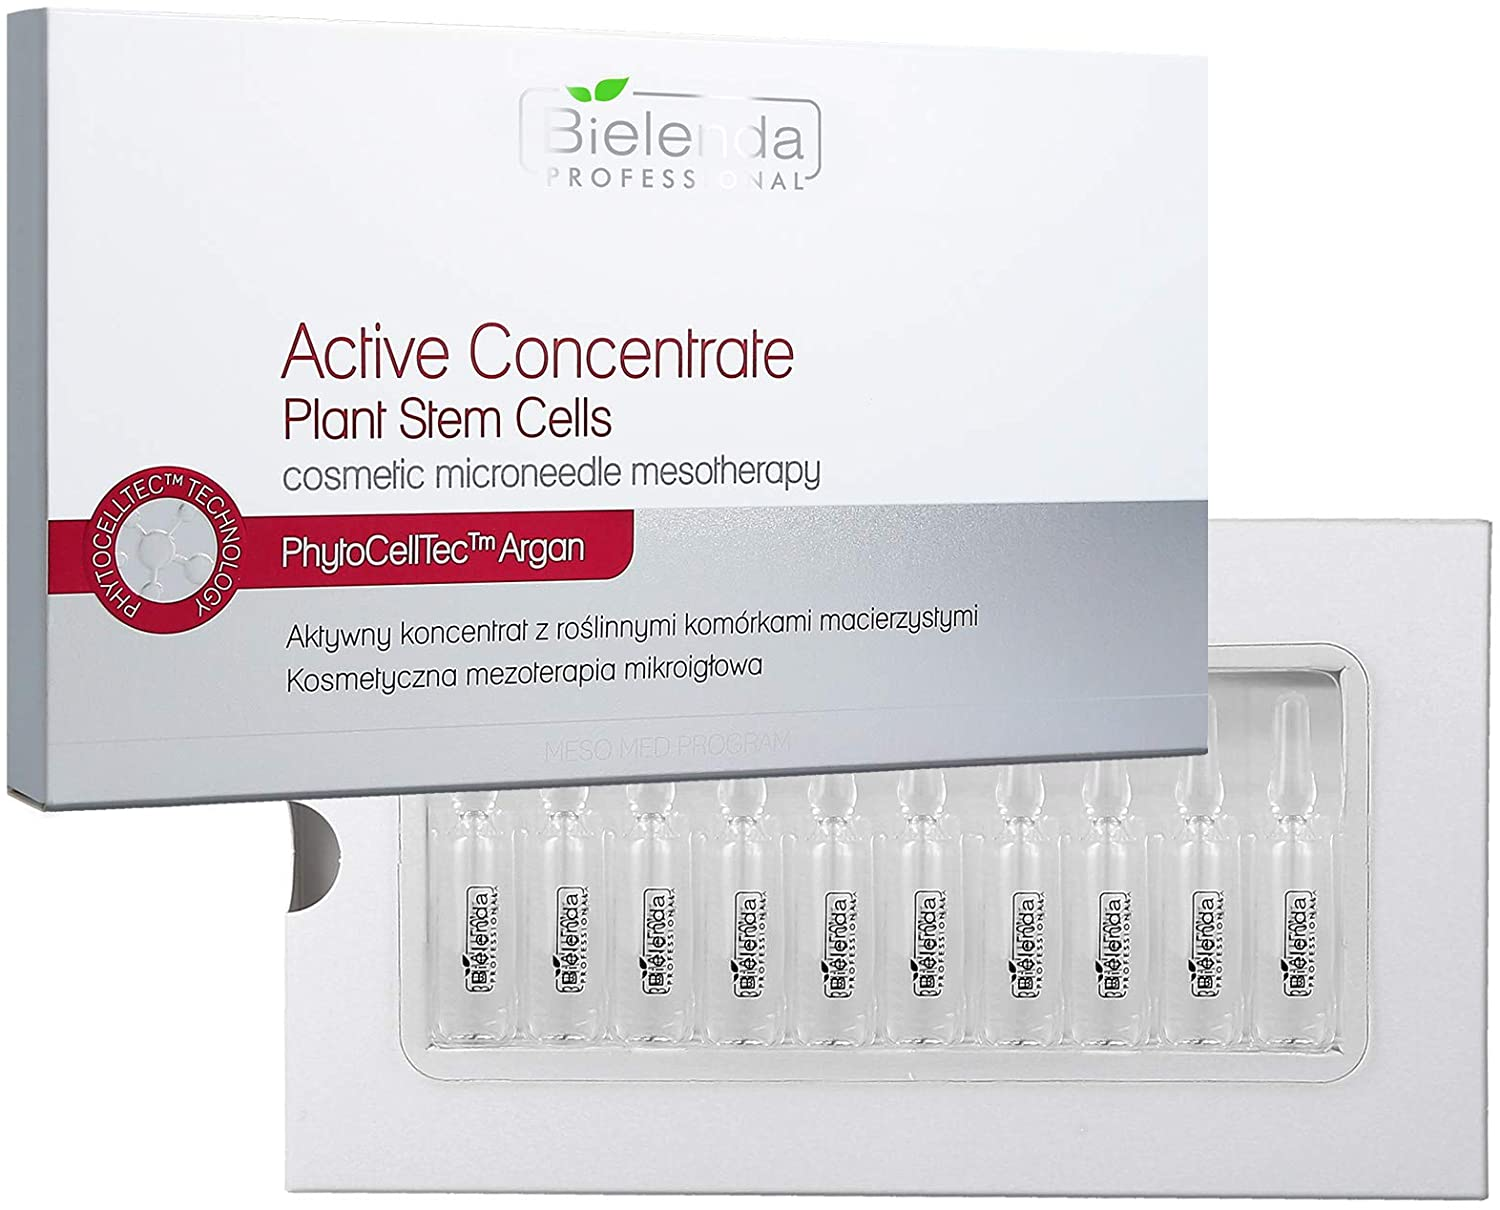 Active Concentrate Plant Stem Cells cosmetische microneedling mesotherapie